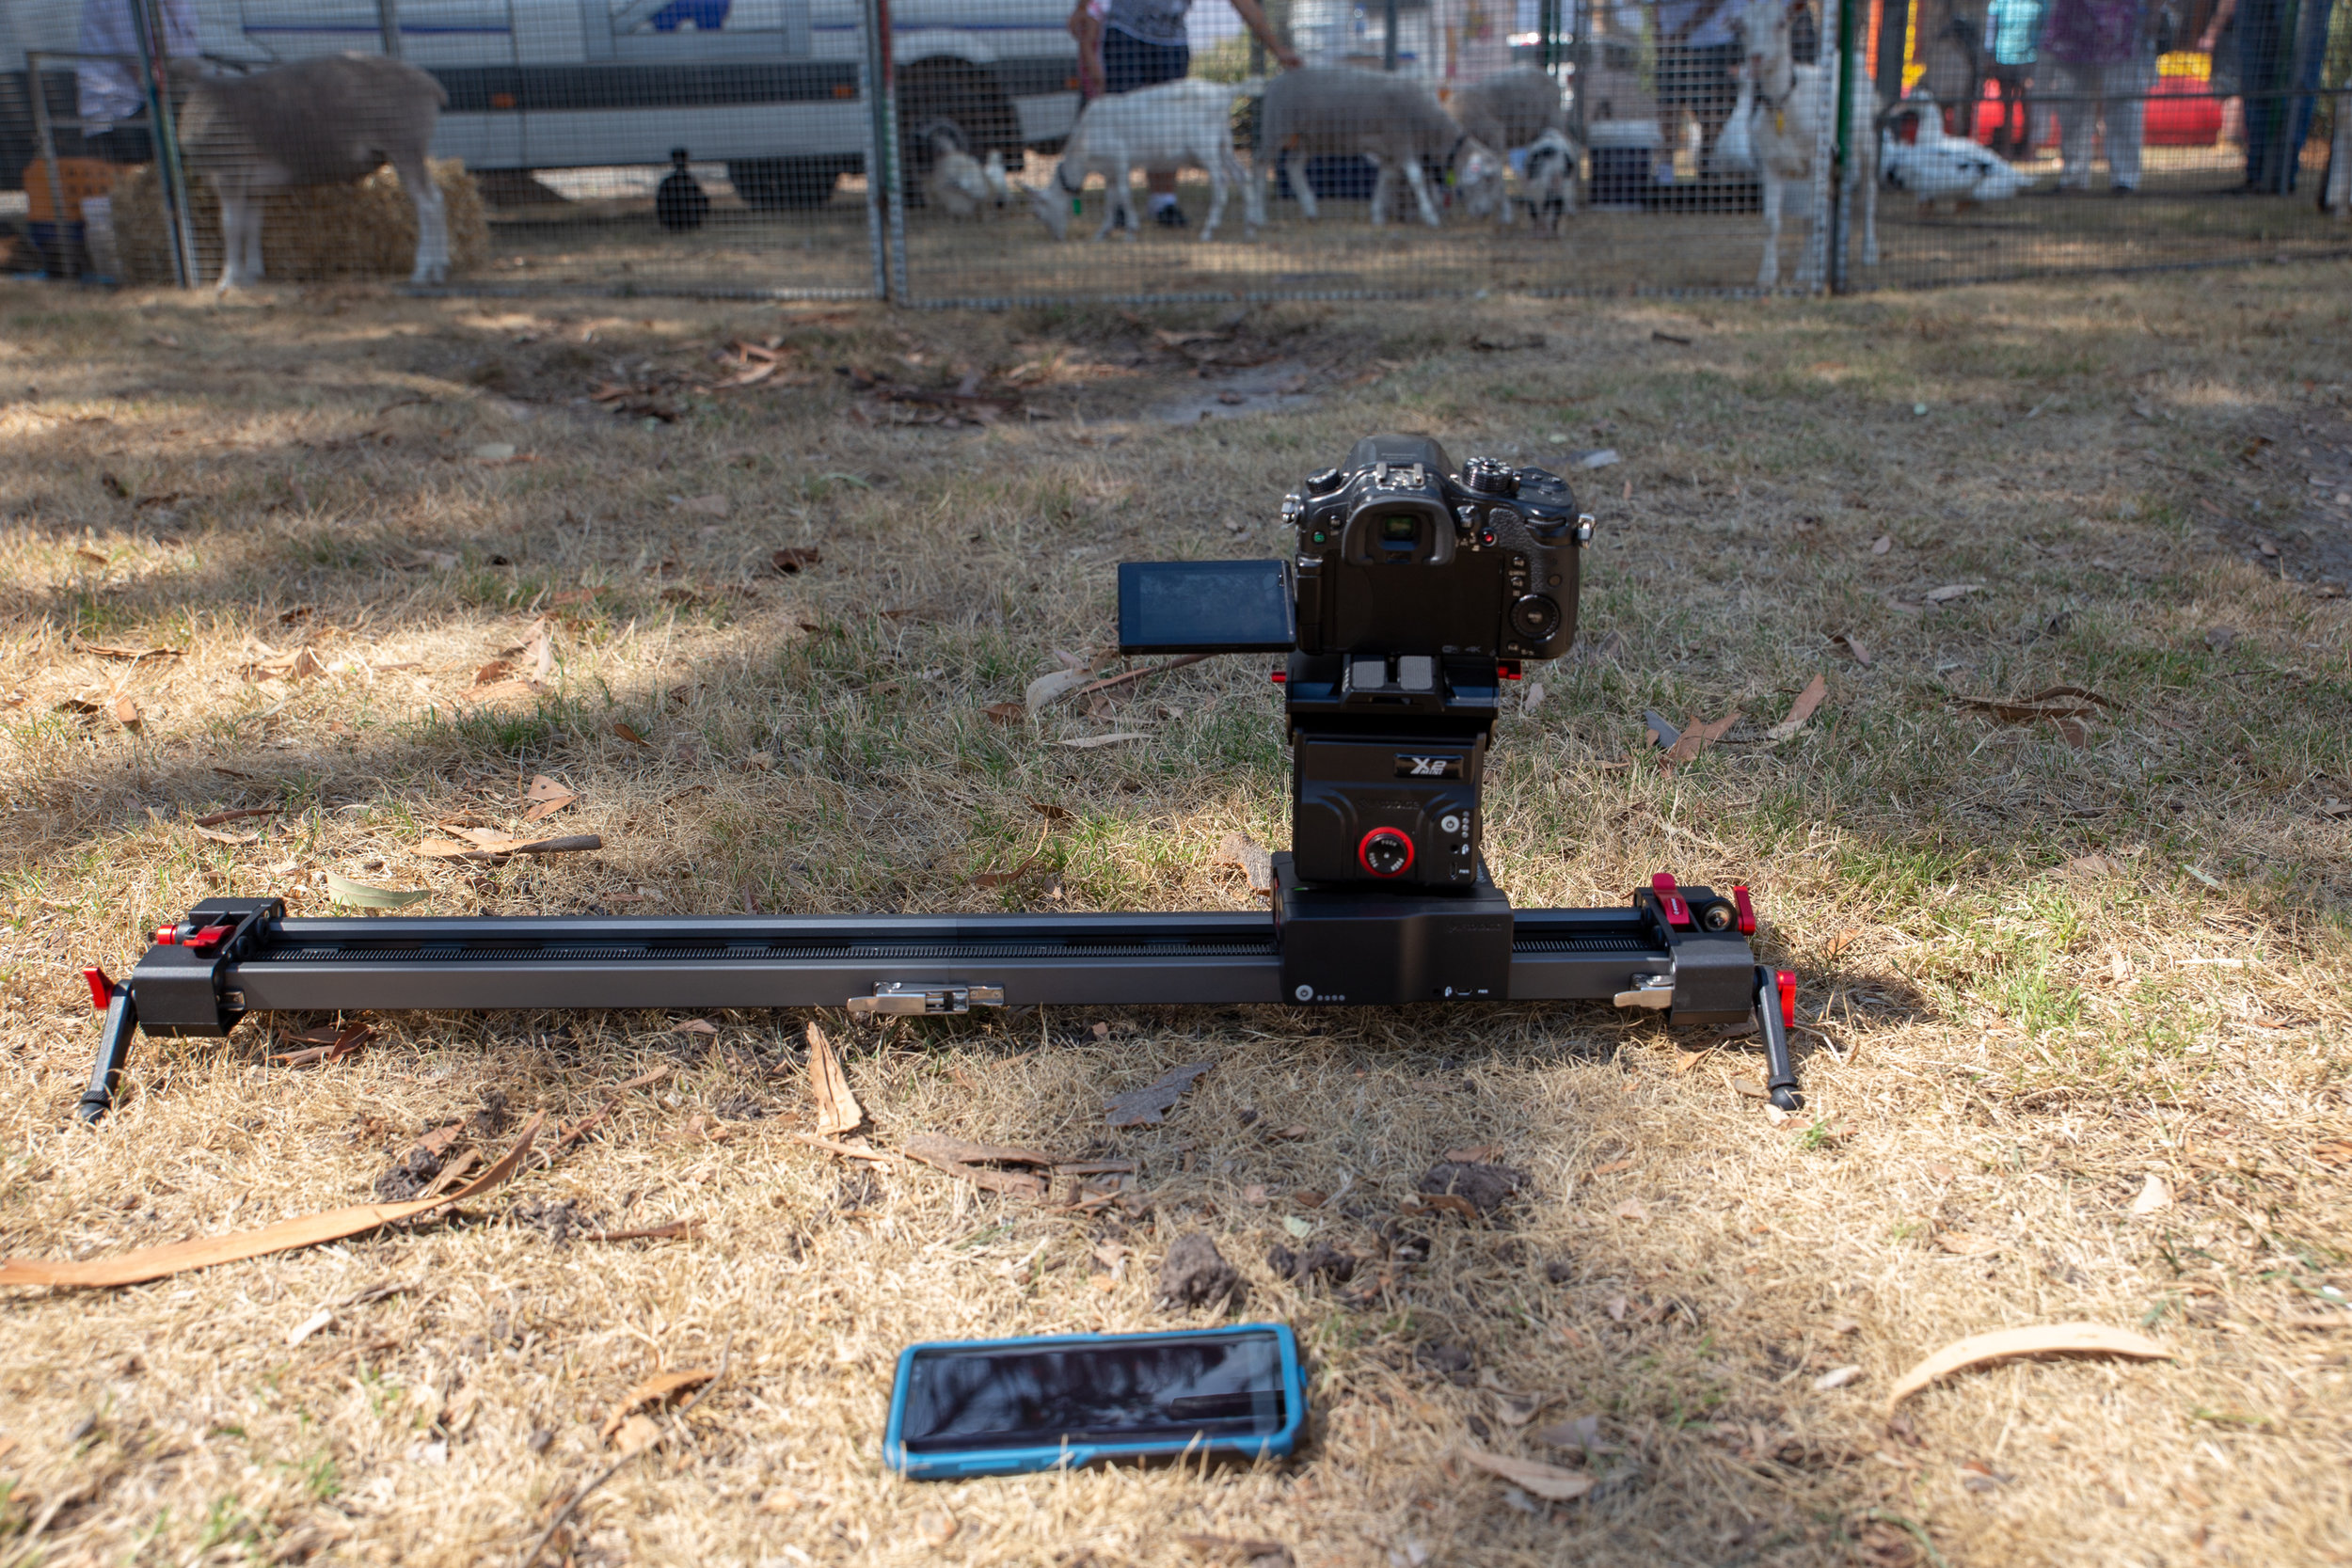 The iFootage Shark Slider mini with motion control module, using the Panasonic GH4 with a 12-35mm F2.8 lens